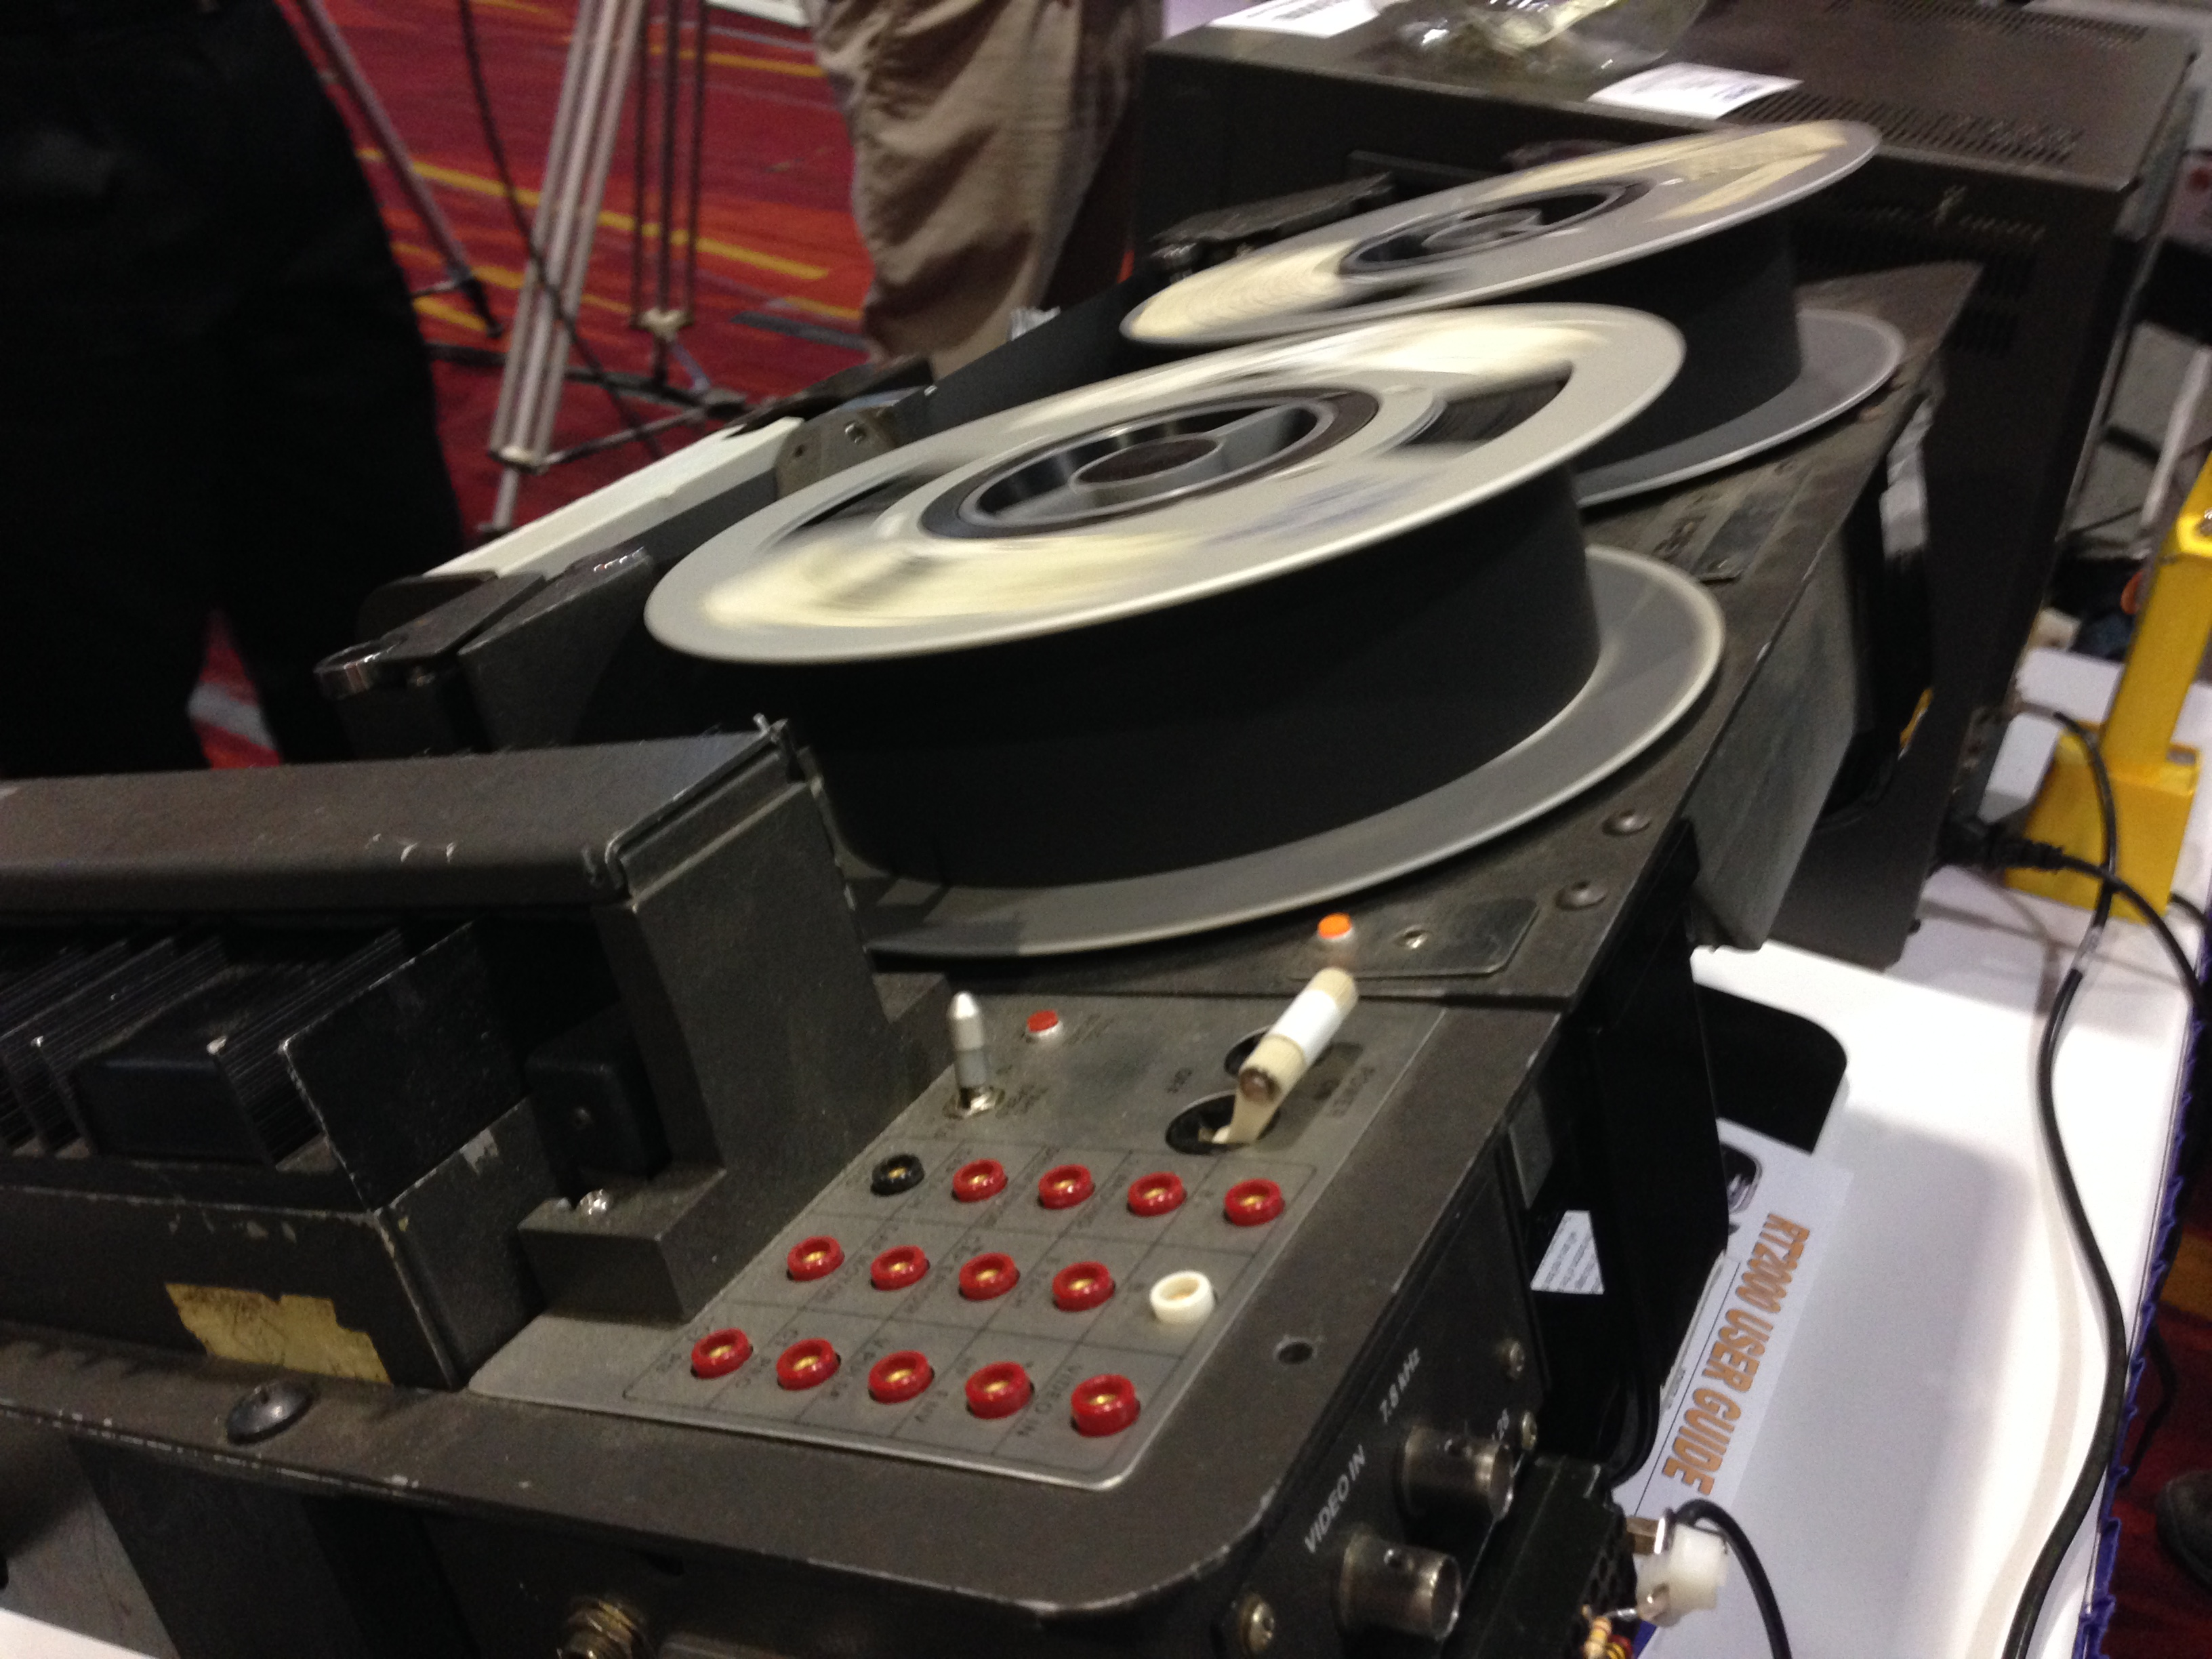 Ampex 3000B in motion. The tape crosses the four video heads at 30 inches per second.